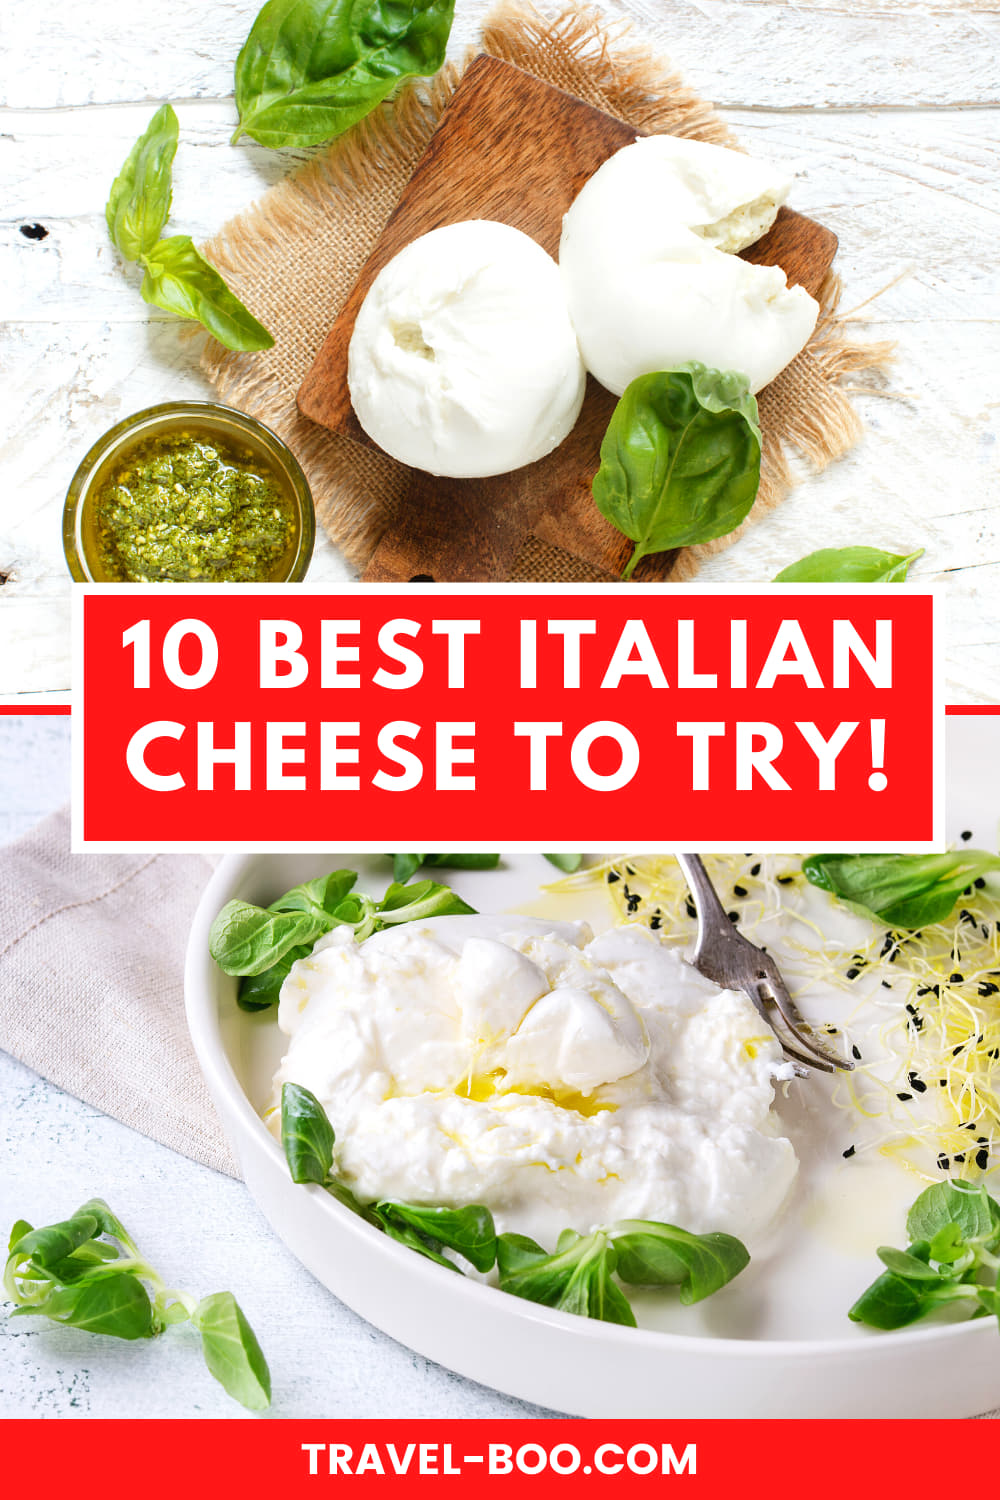 10 Of The Best Cheeses from Italy to try! Best Italian Cheeses, Cheese from Italy, Italian Cheese, Italian Food, Italian Cuisine, What to Eat in Italy, Cheeses in Italy!